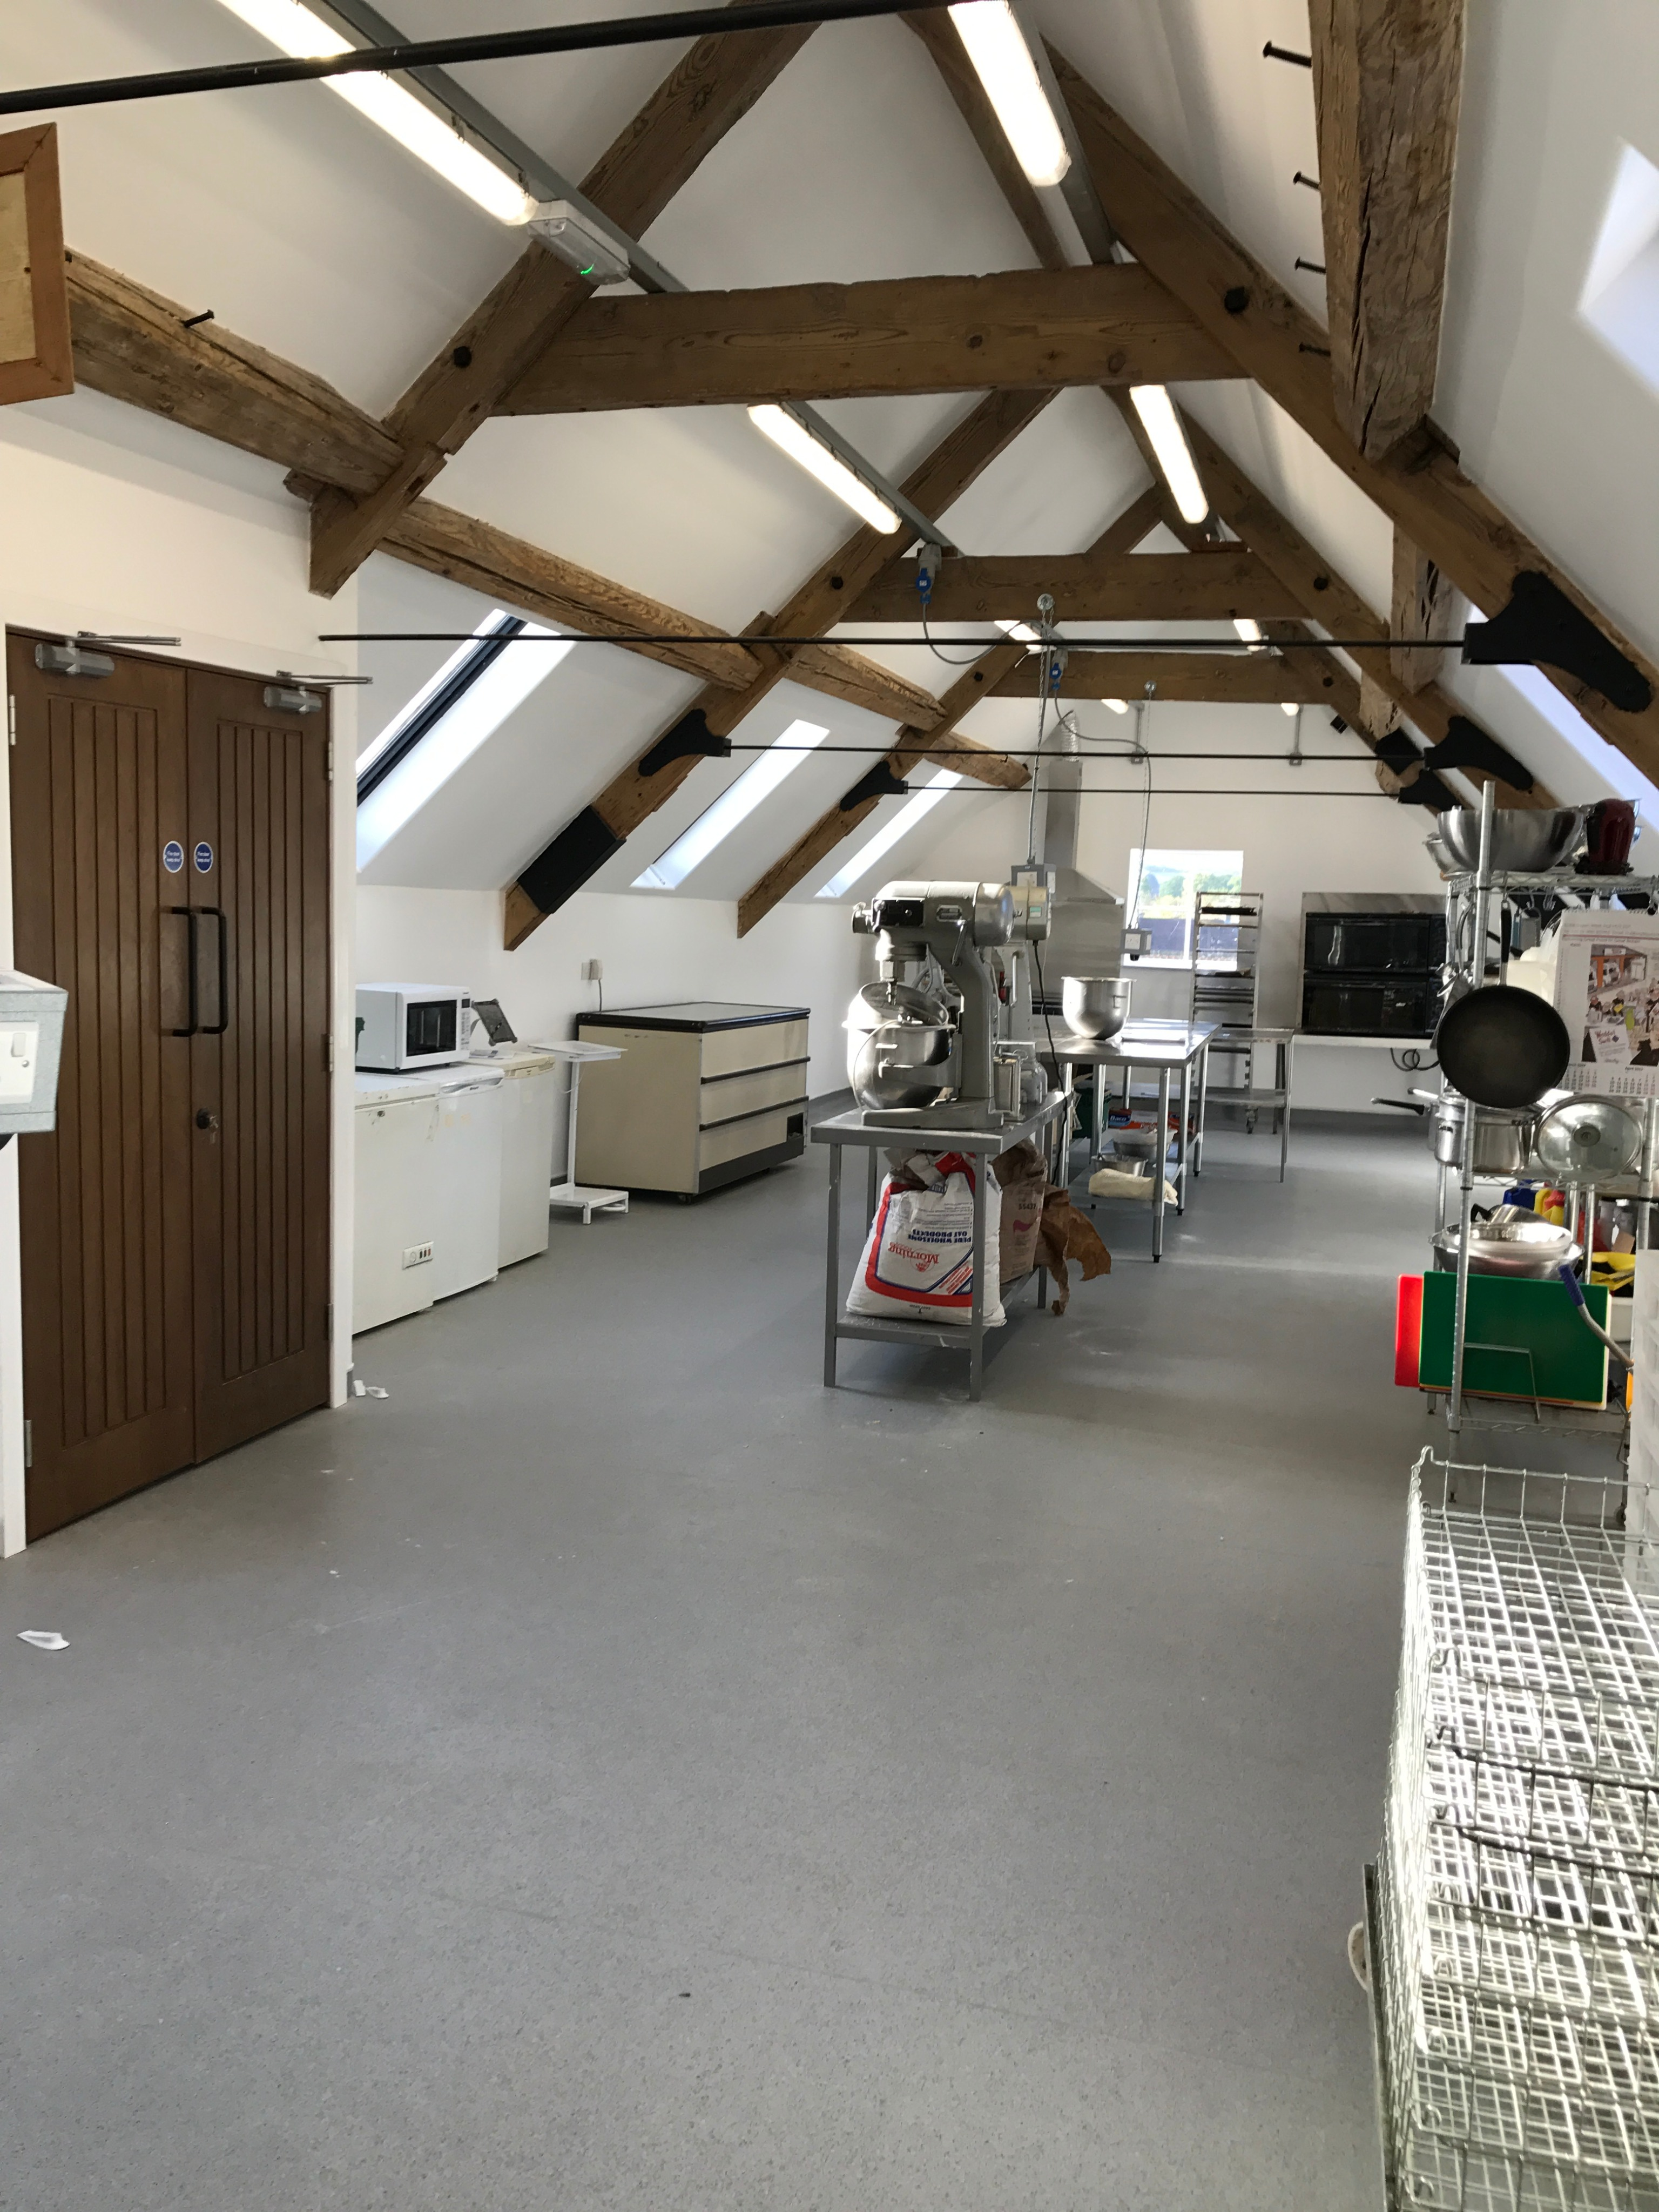 Costello's Bakery Production room2